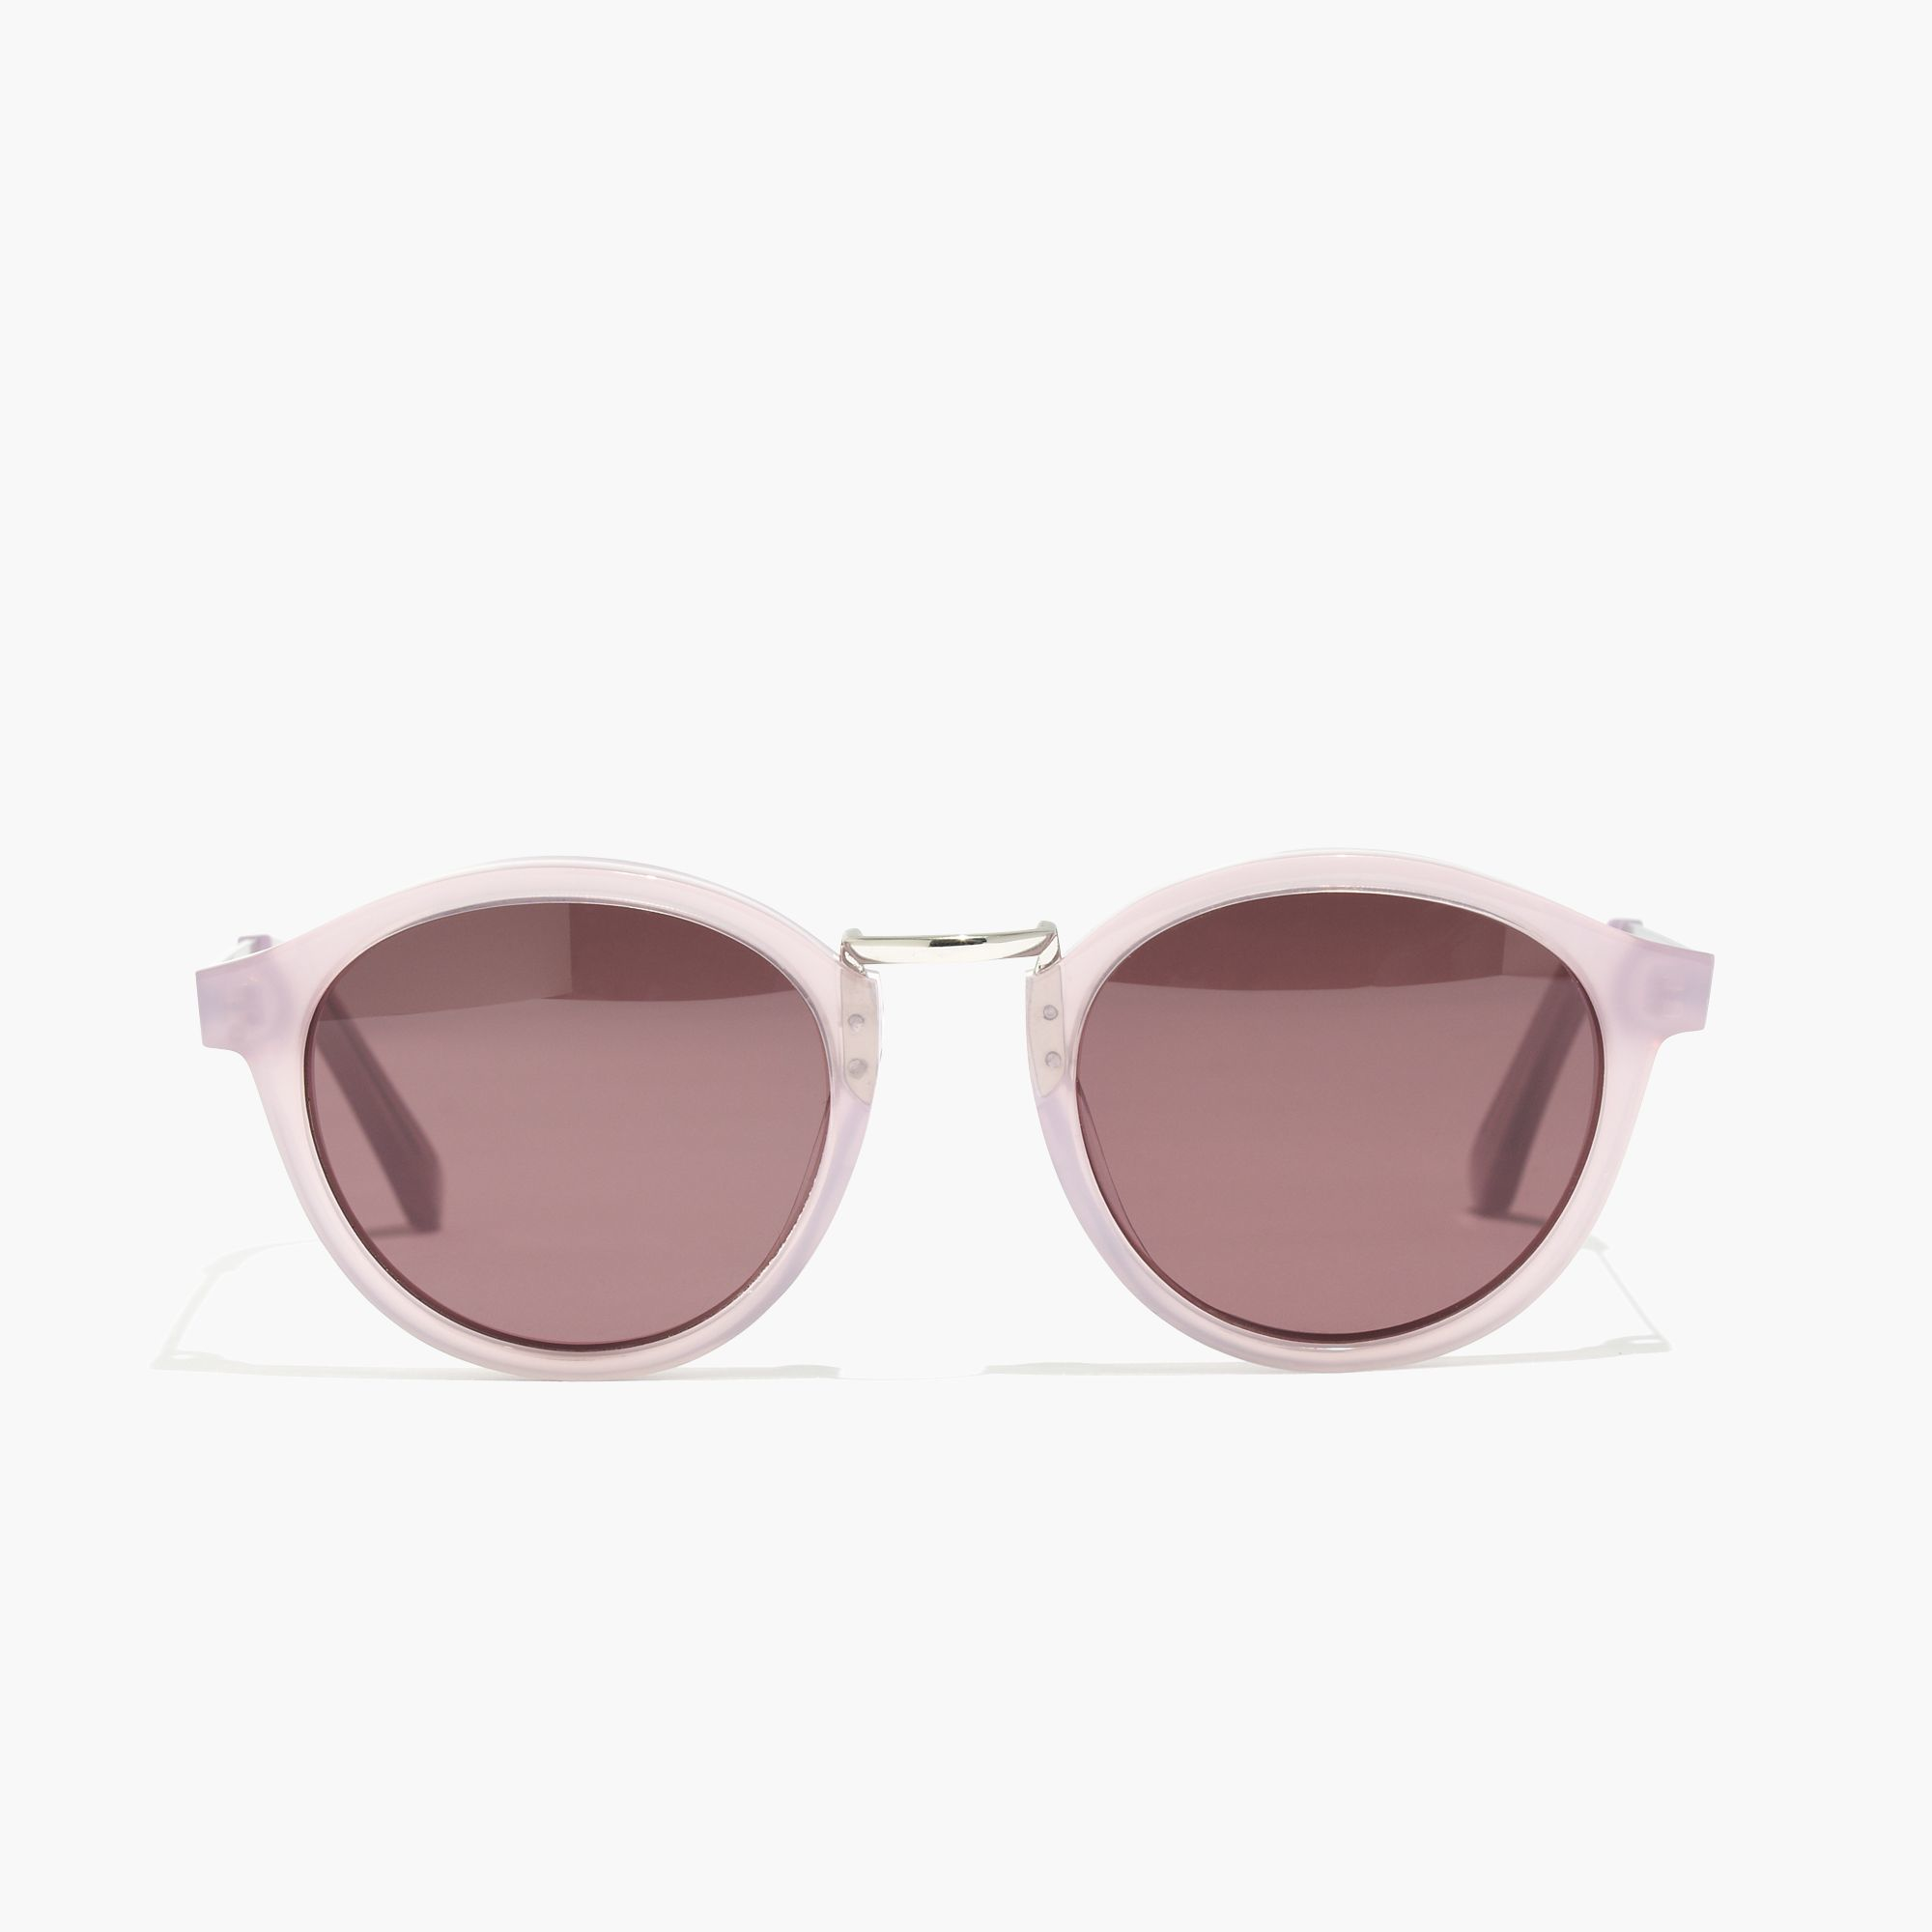 Madewell Indio Sunglasses in Pink